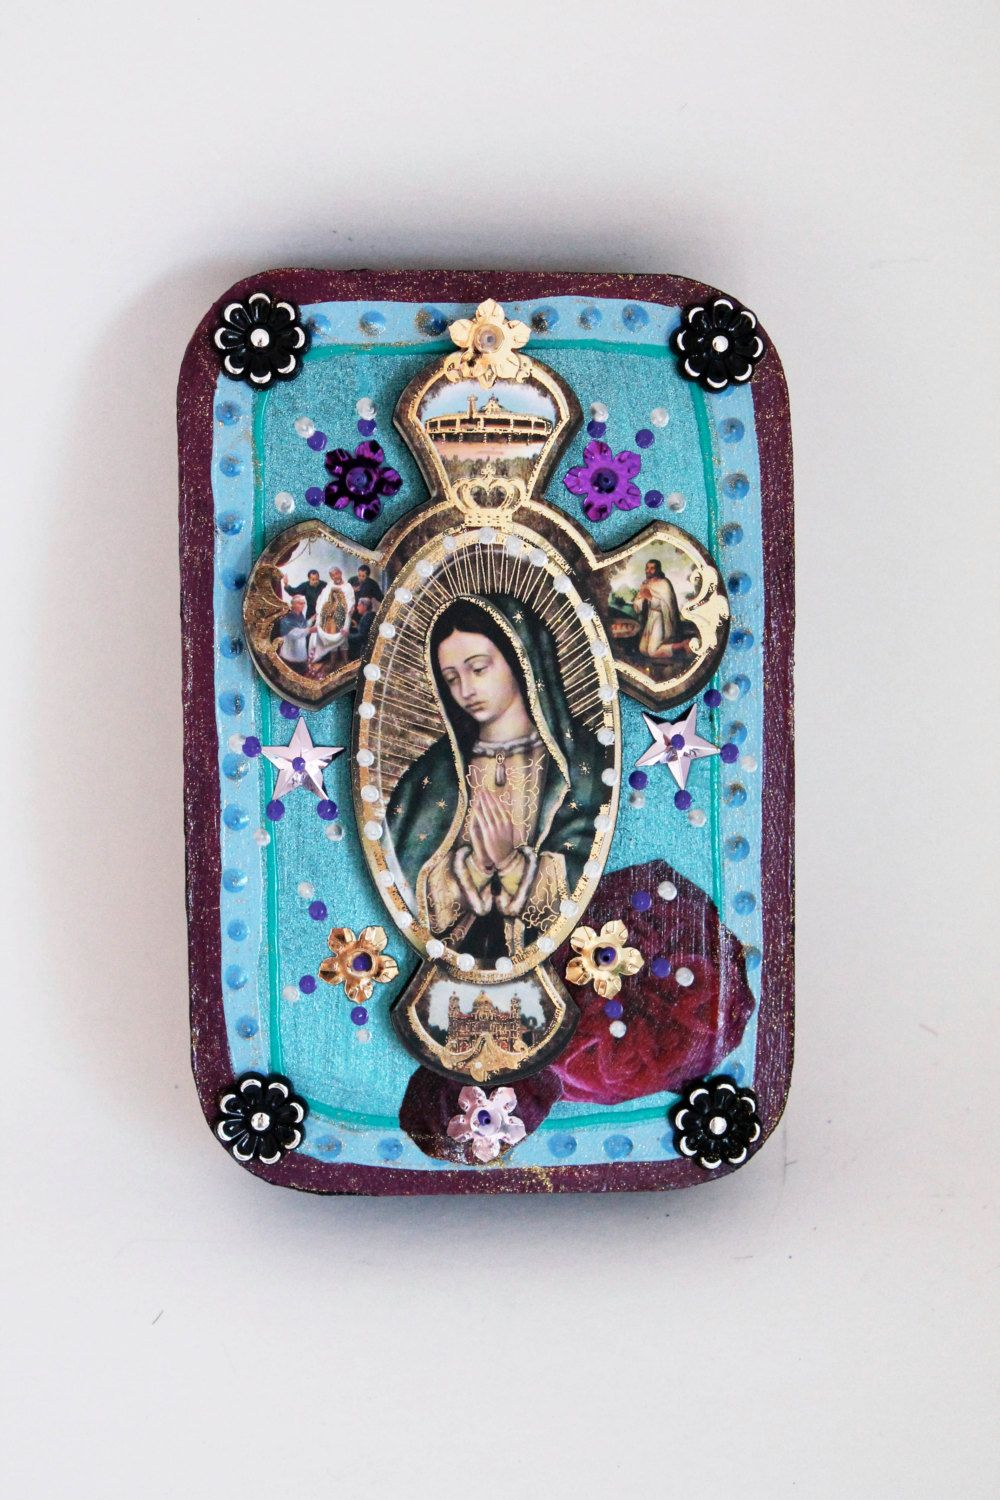 Our lady of guadalupe box frame mexican style with 3d for Our lady of guadalupe arts and crafts